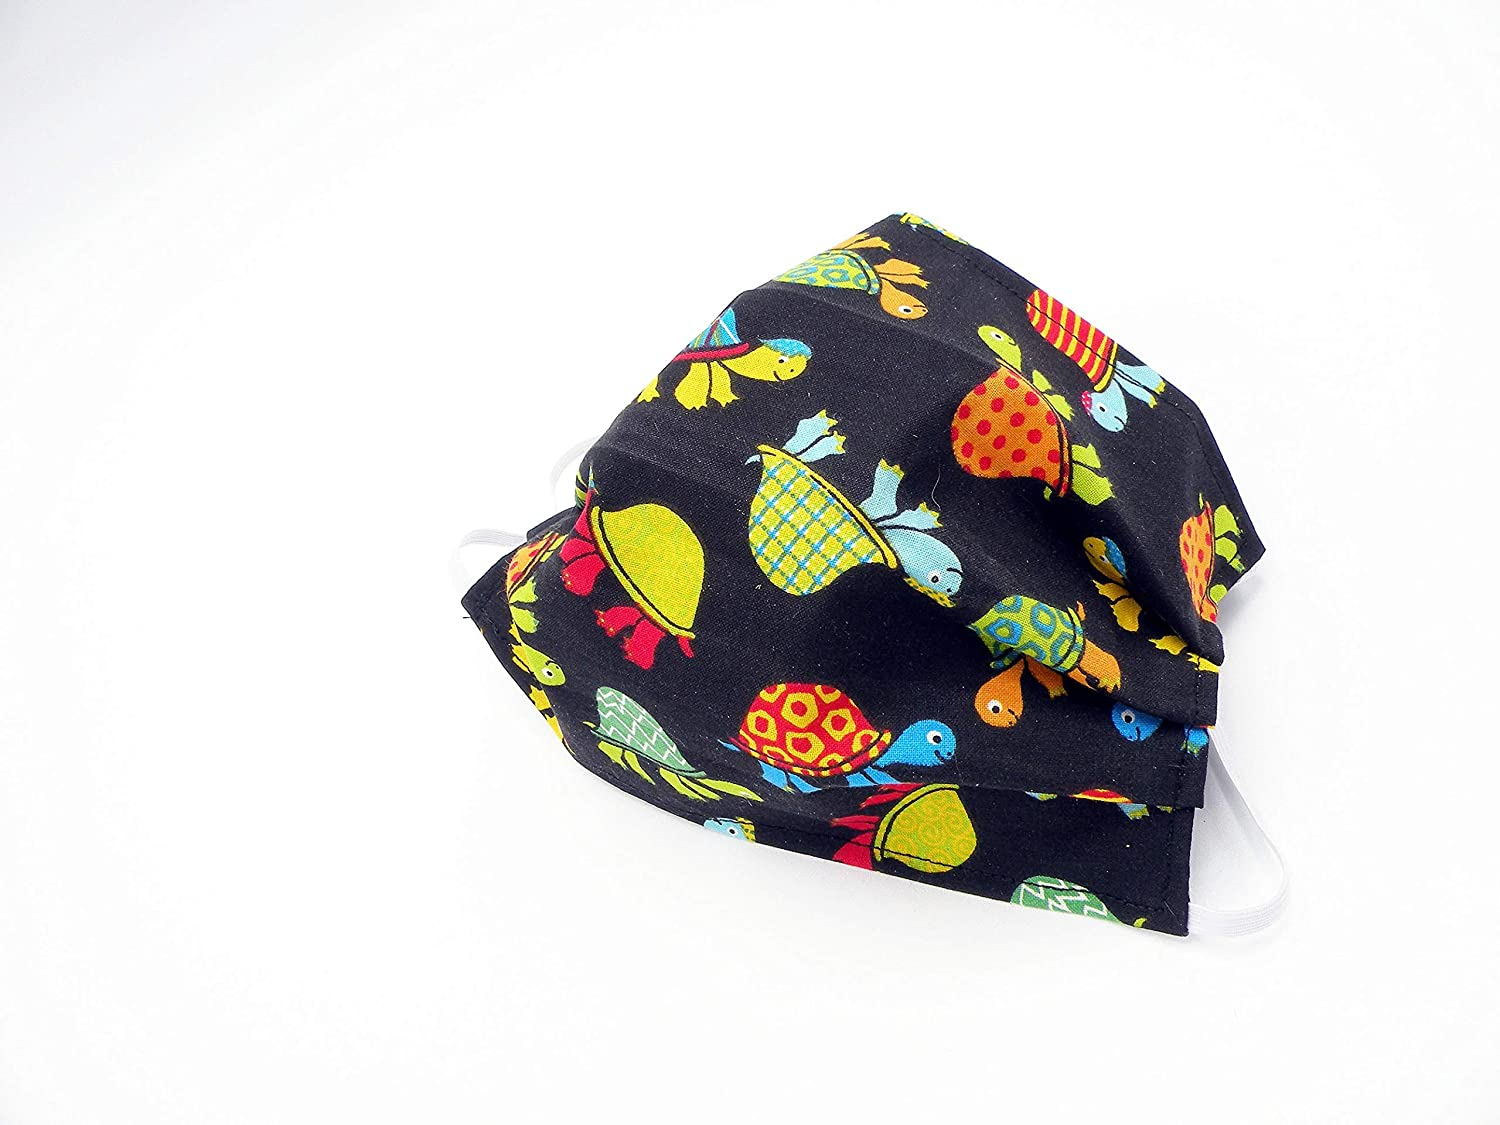 Tossed Turtles Cloth Face Mask Washable and unisex has Slit fo Cheap mail order sales Reusable